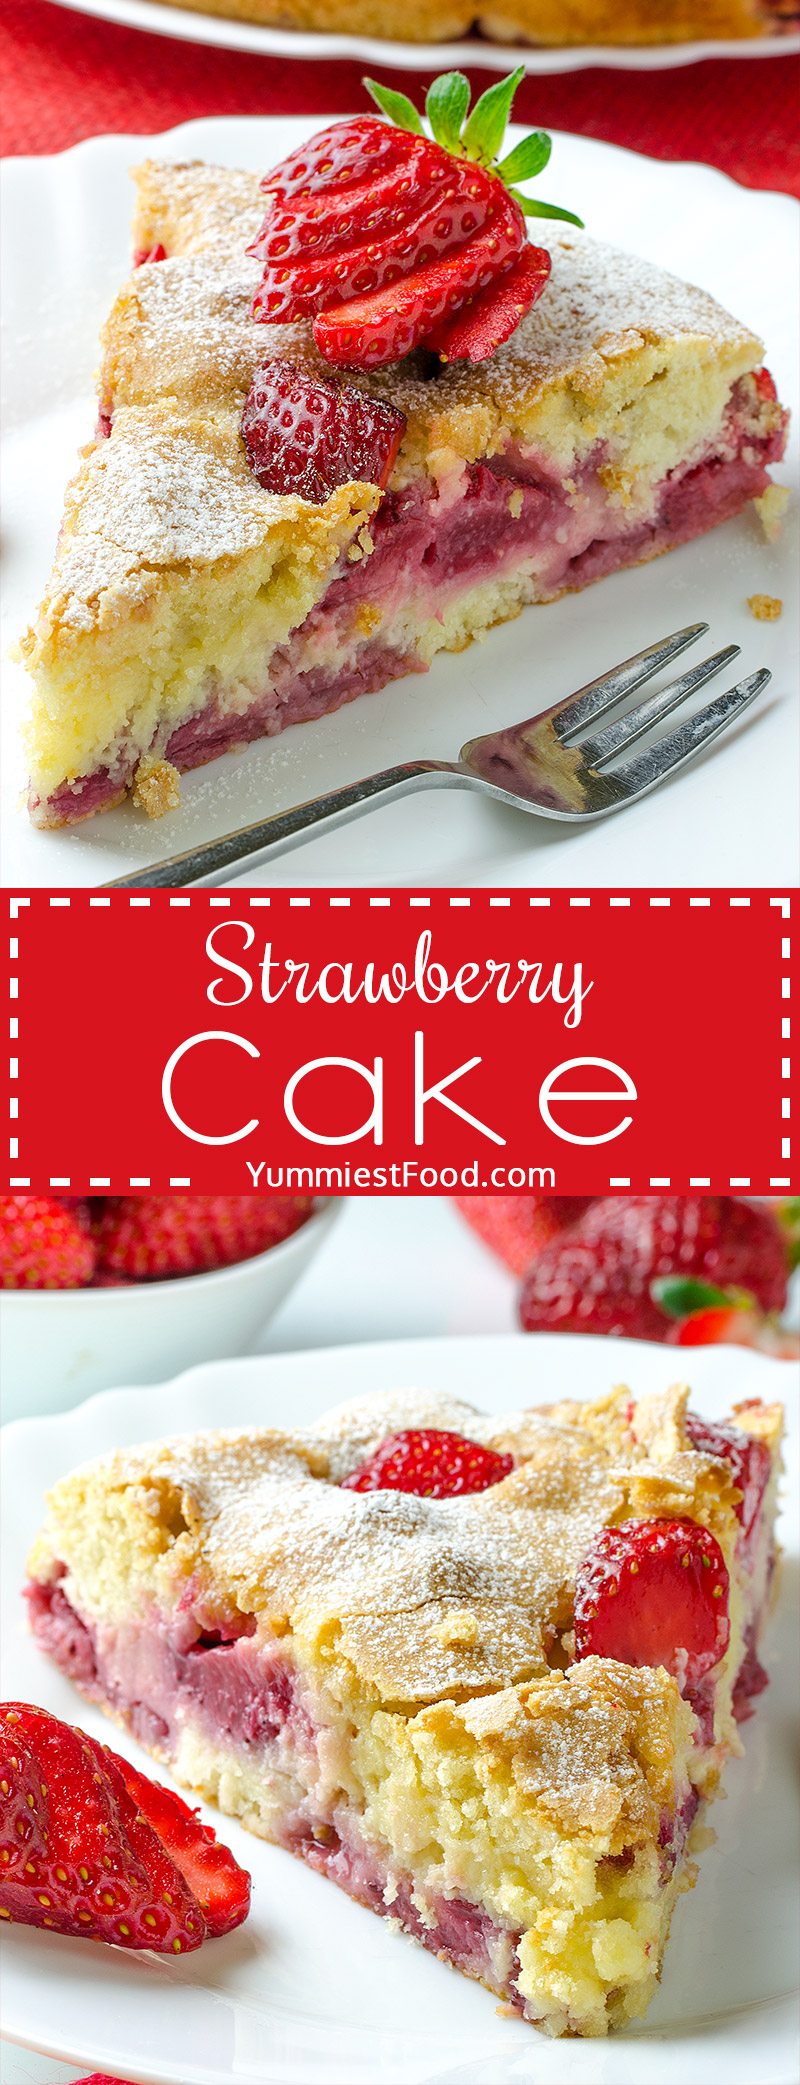 Strawberry Cake - Rich flavor, moist, super tasty and easy to make